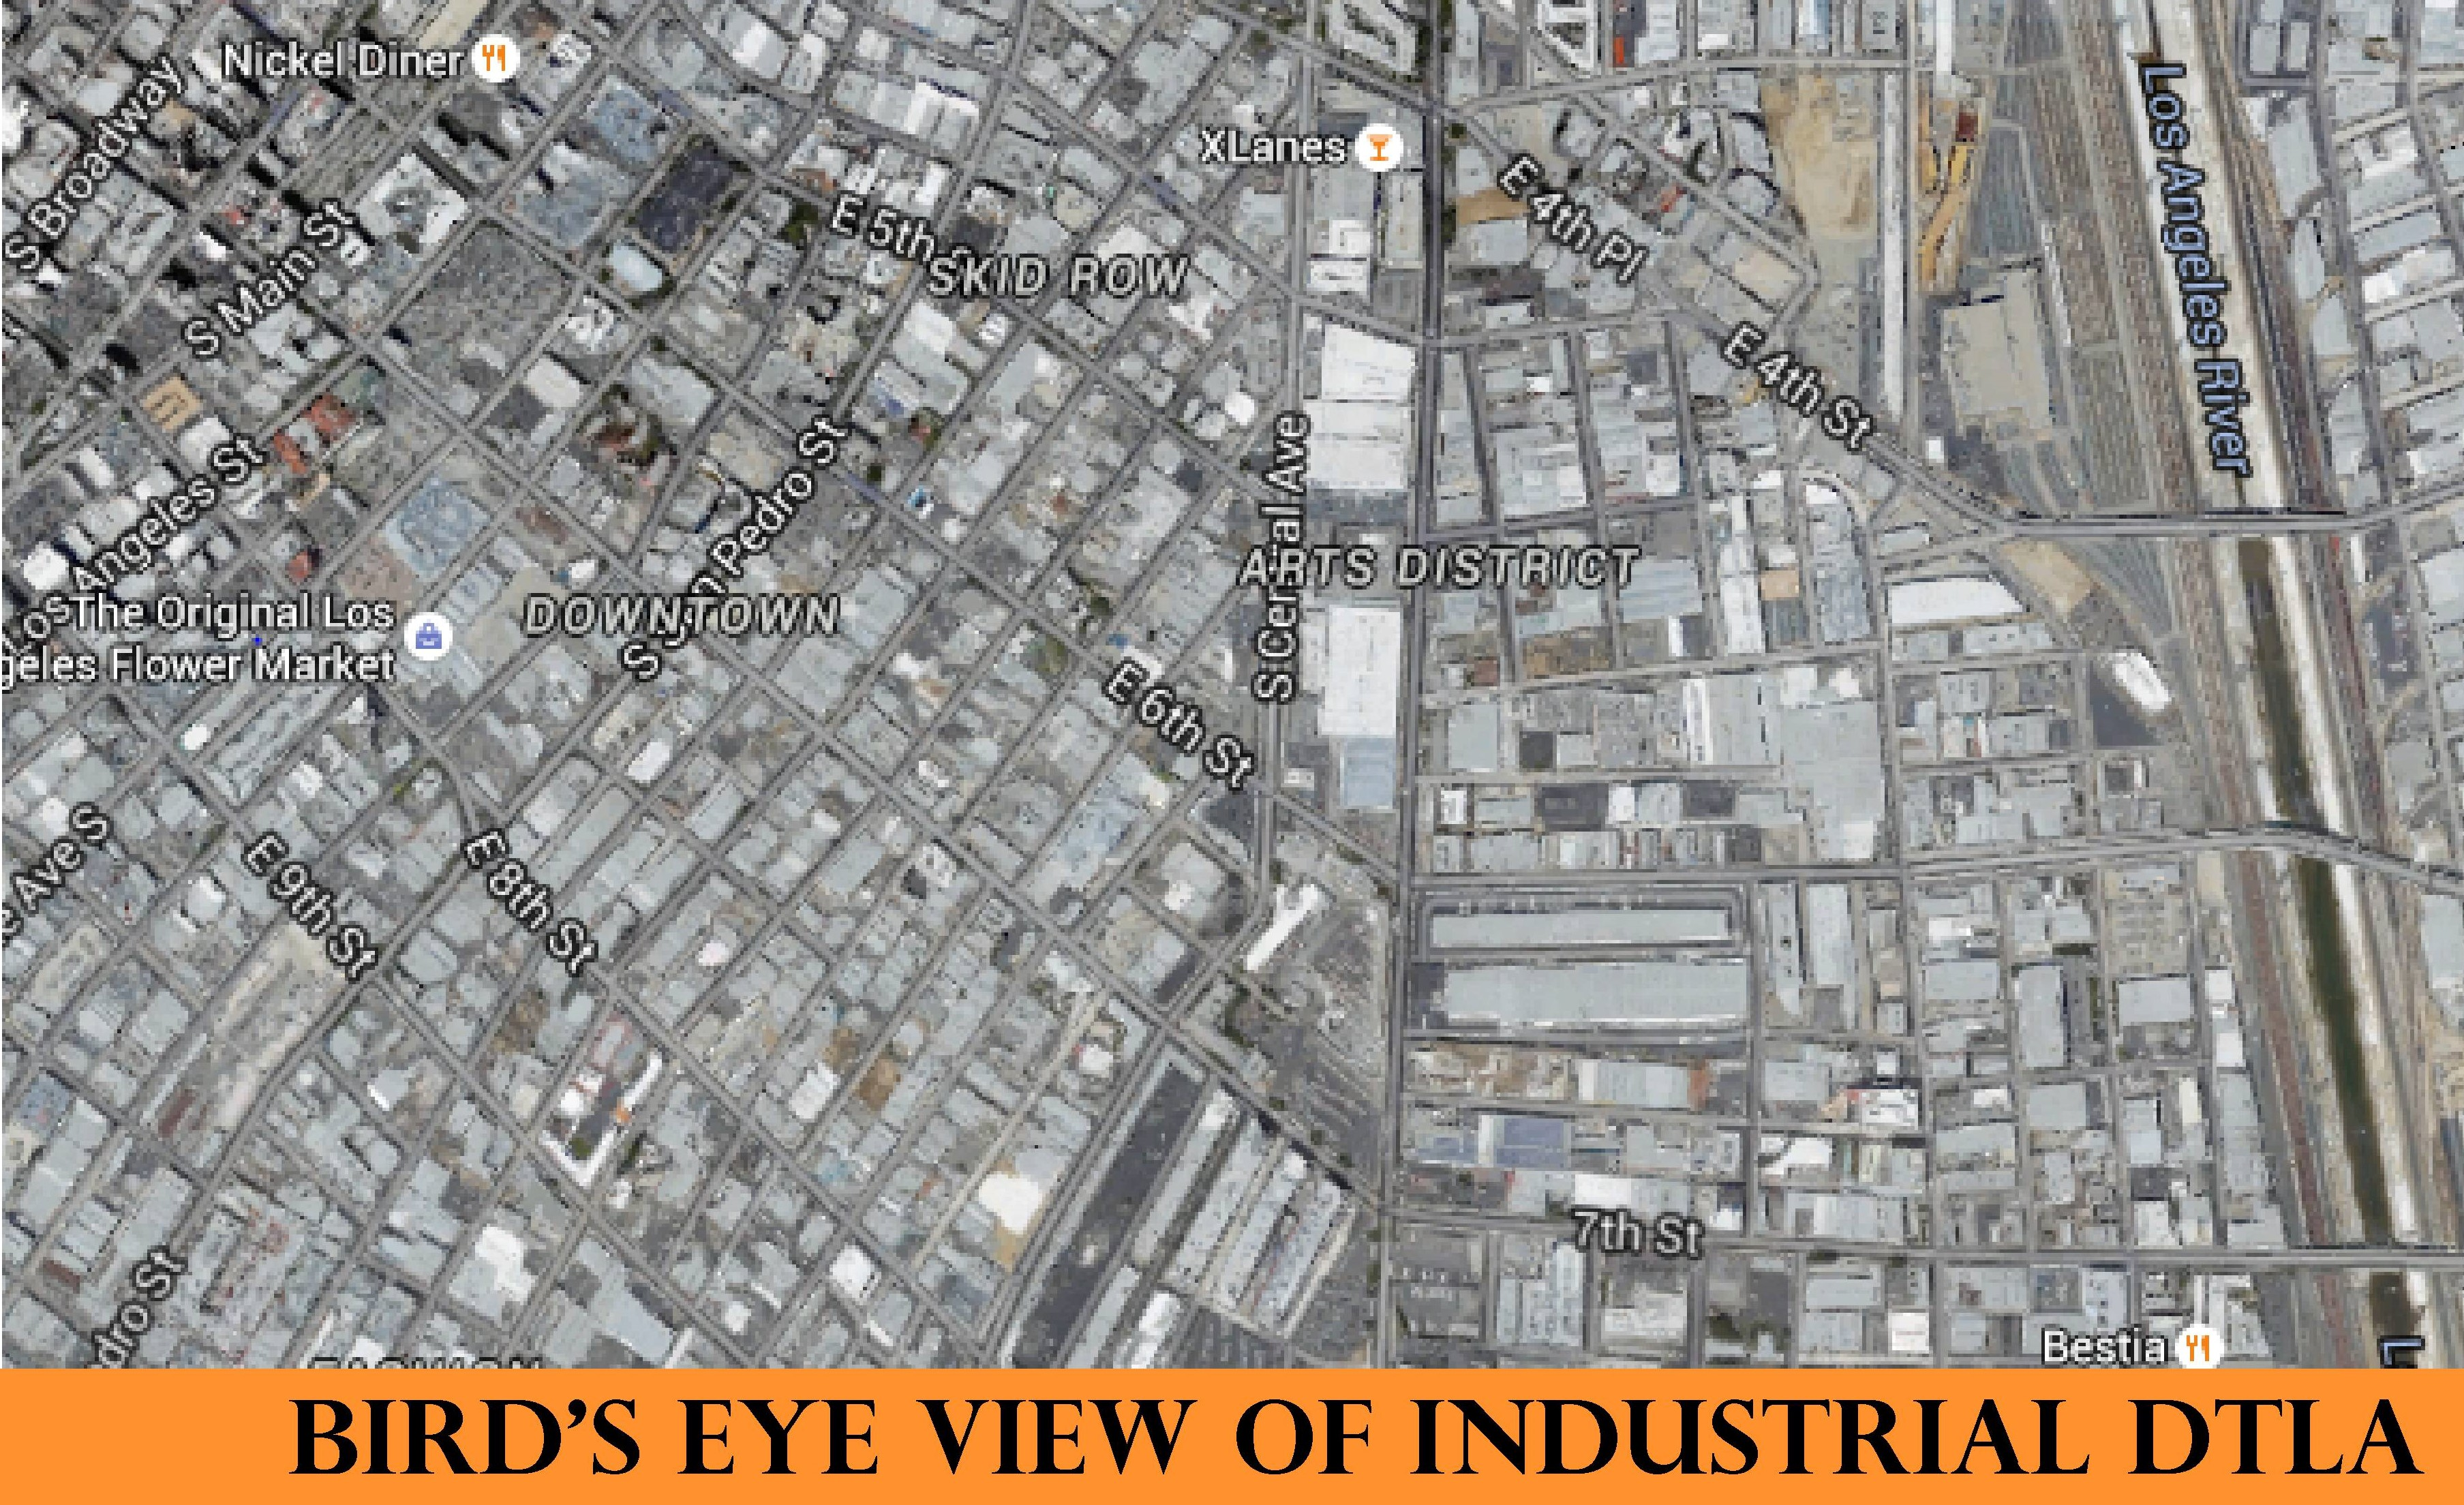 Industrial_DTLA_Birds_Eye.jpg